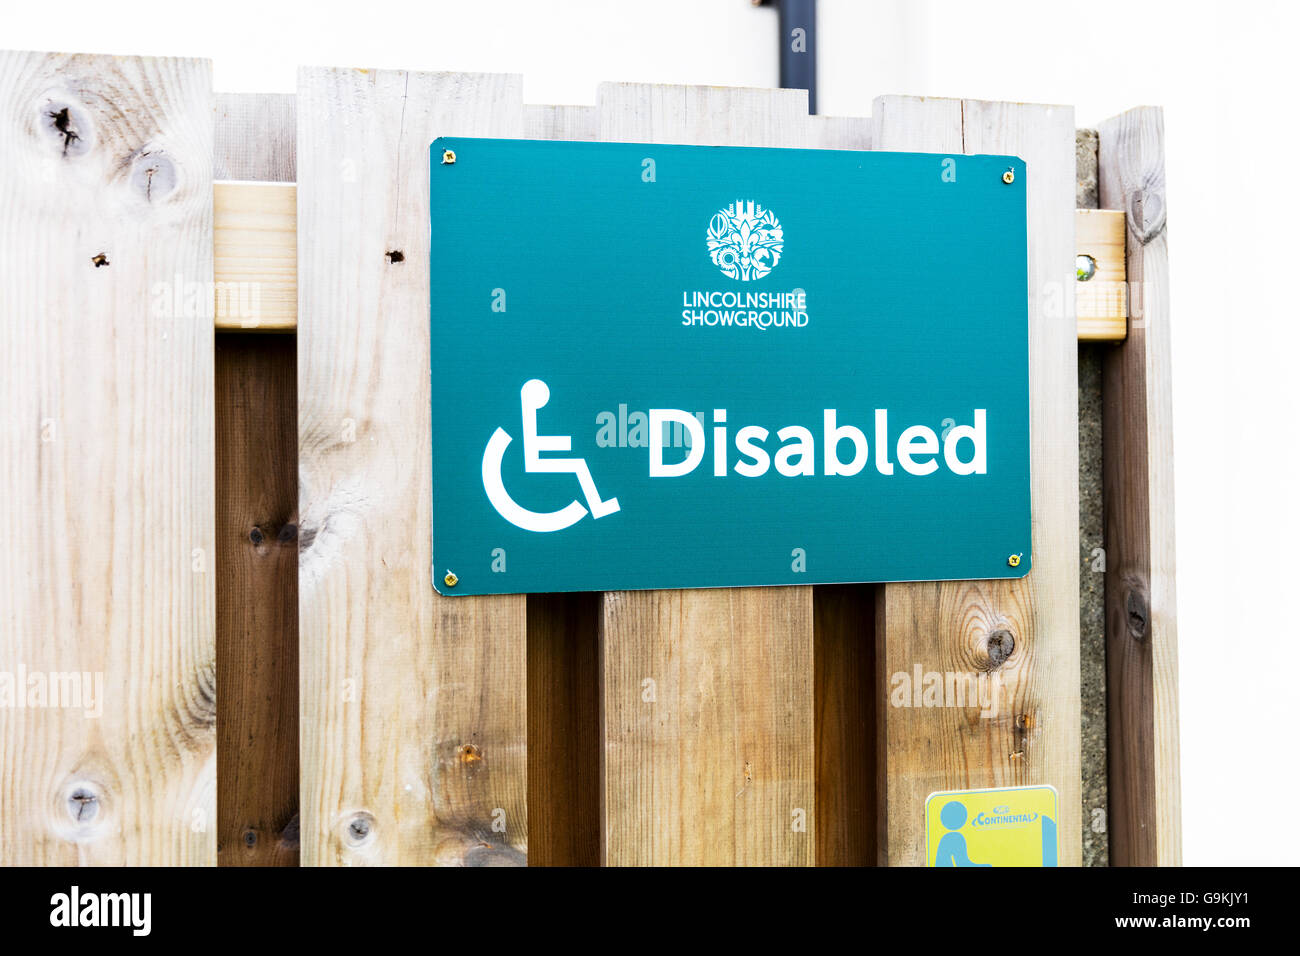 Disabled toilets sign for disabled people disability disabilities UK England GB - Stock Image